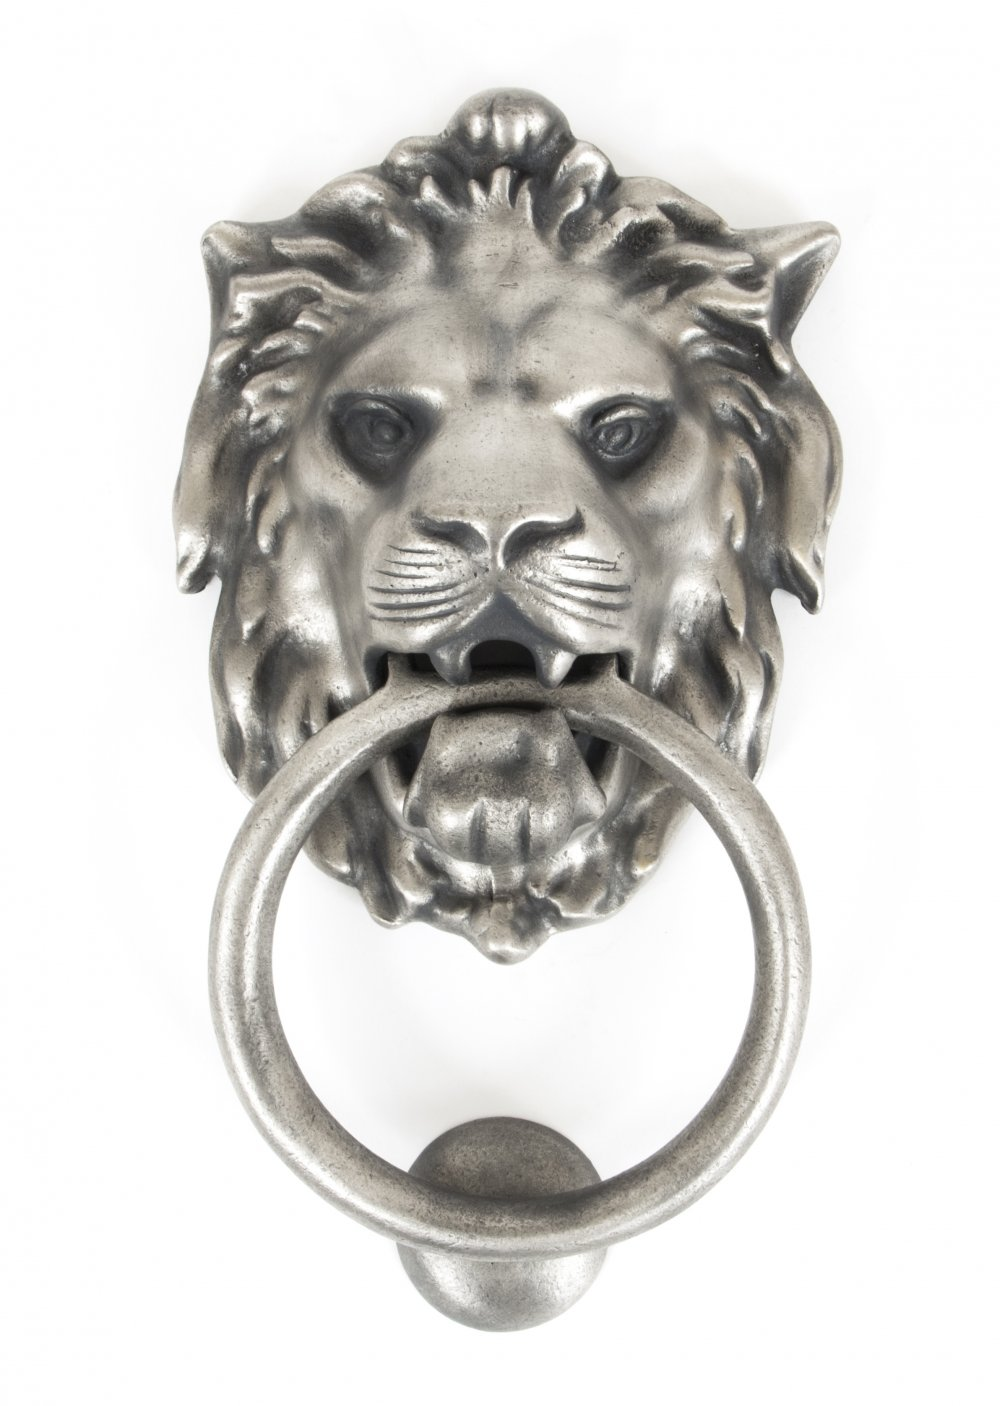 Lion's Head Door Knocker - Antique Pewter image